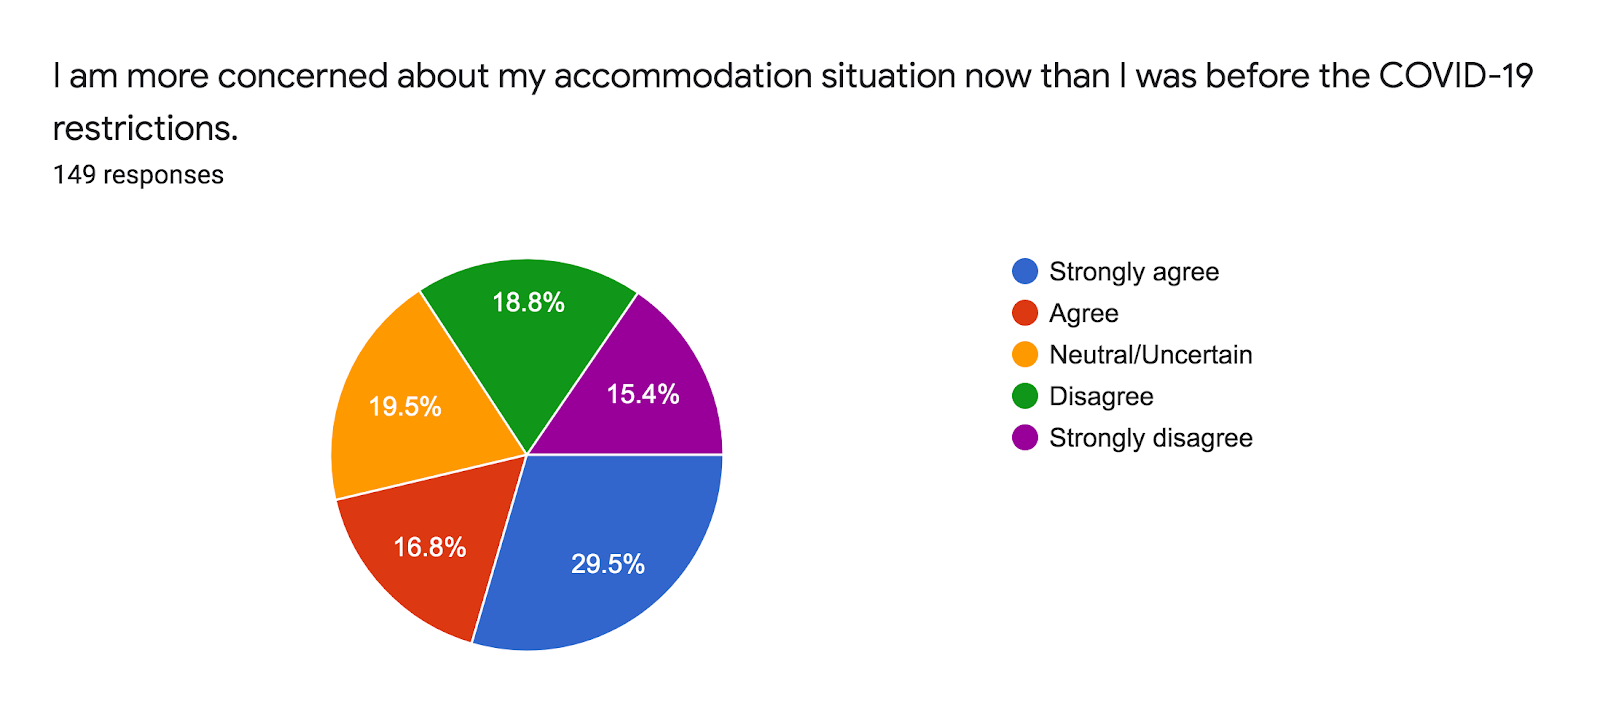 Forms response chart. Question title: I am more concerned about my accommodation situation now than I was before the COVID-19 restrictions.. Number of responses: 149 responses.